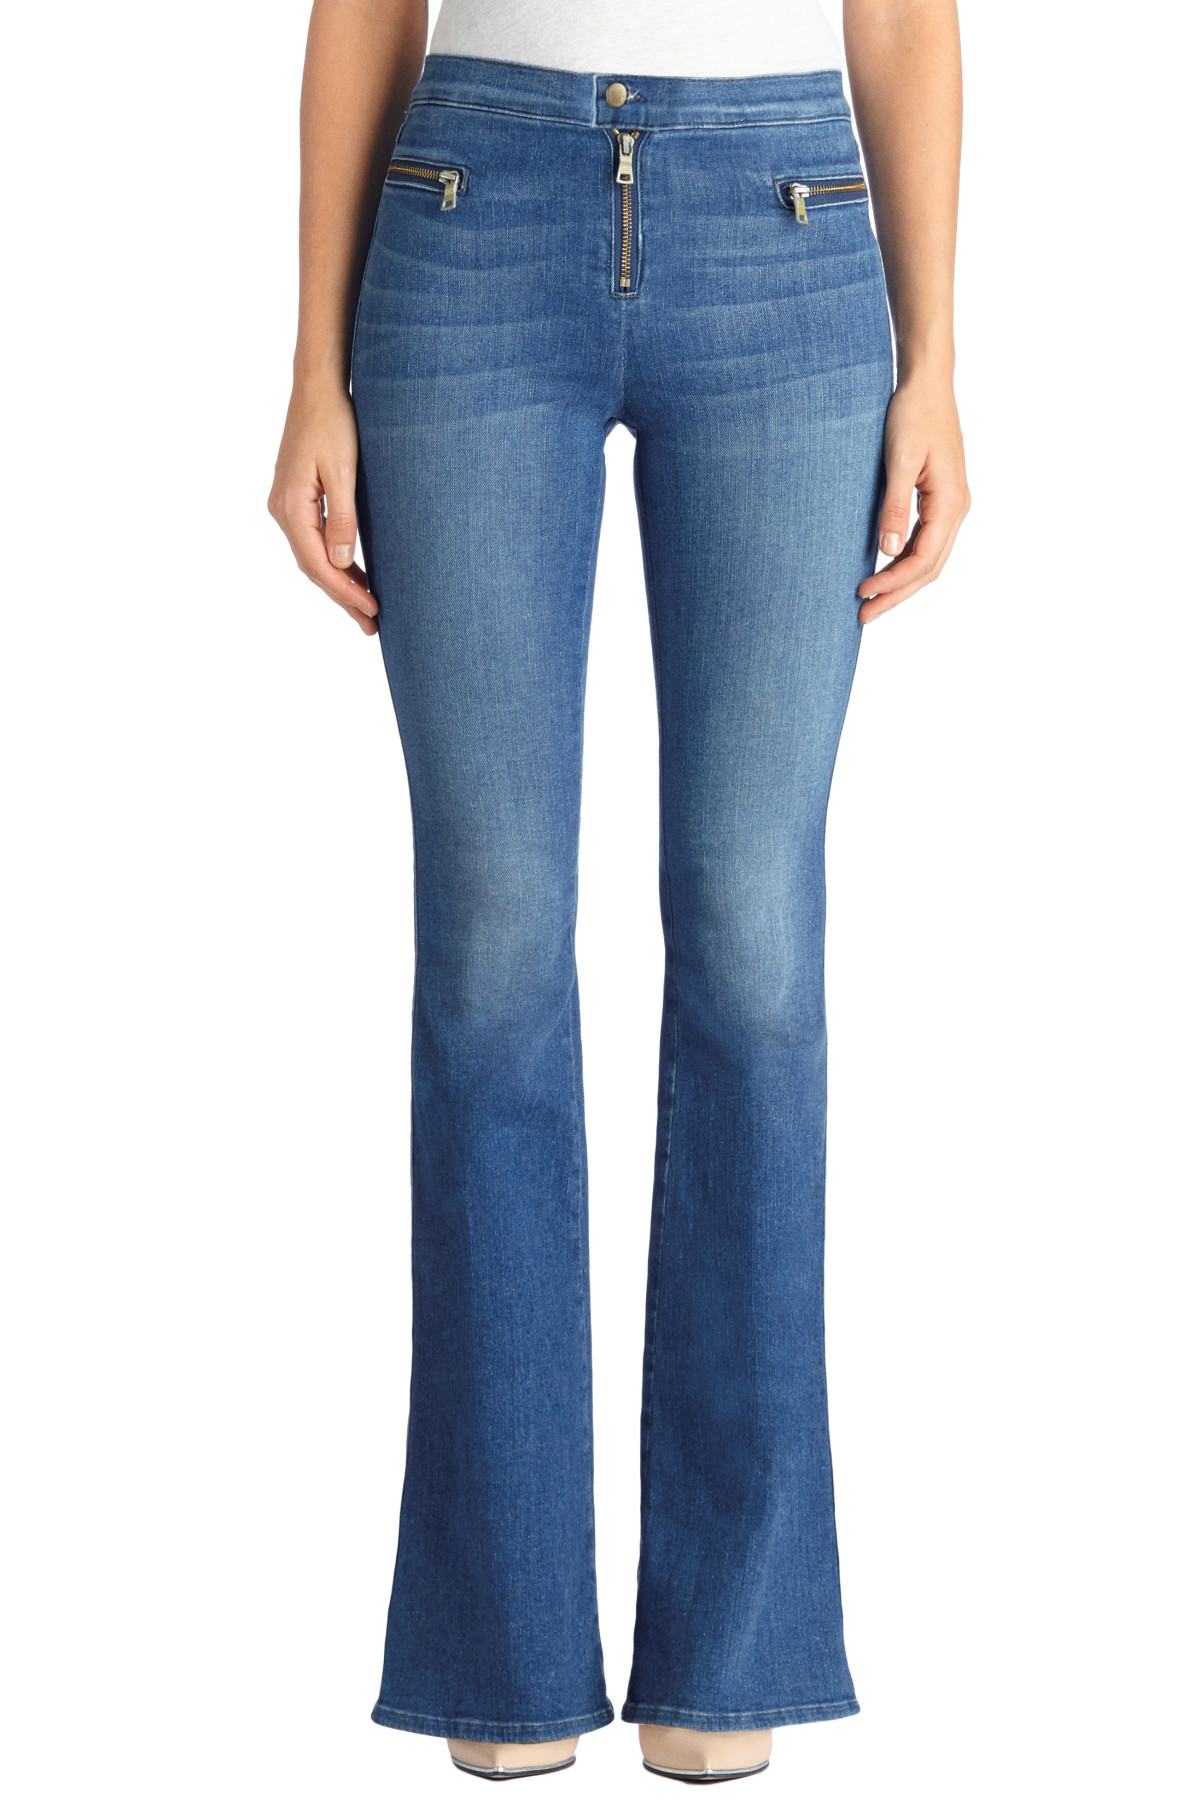 J brand 22312 Katie Slim Flare With Exposed Front Zippers (short ...